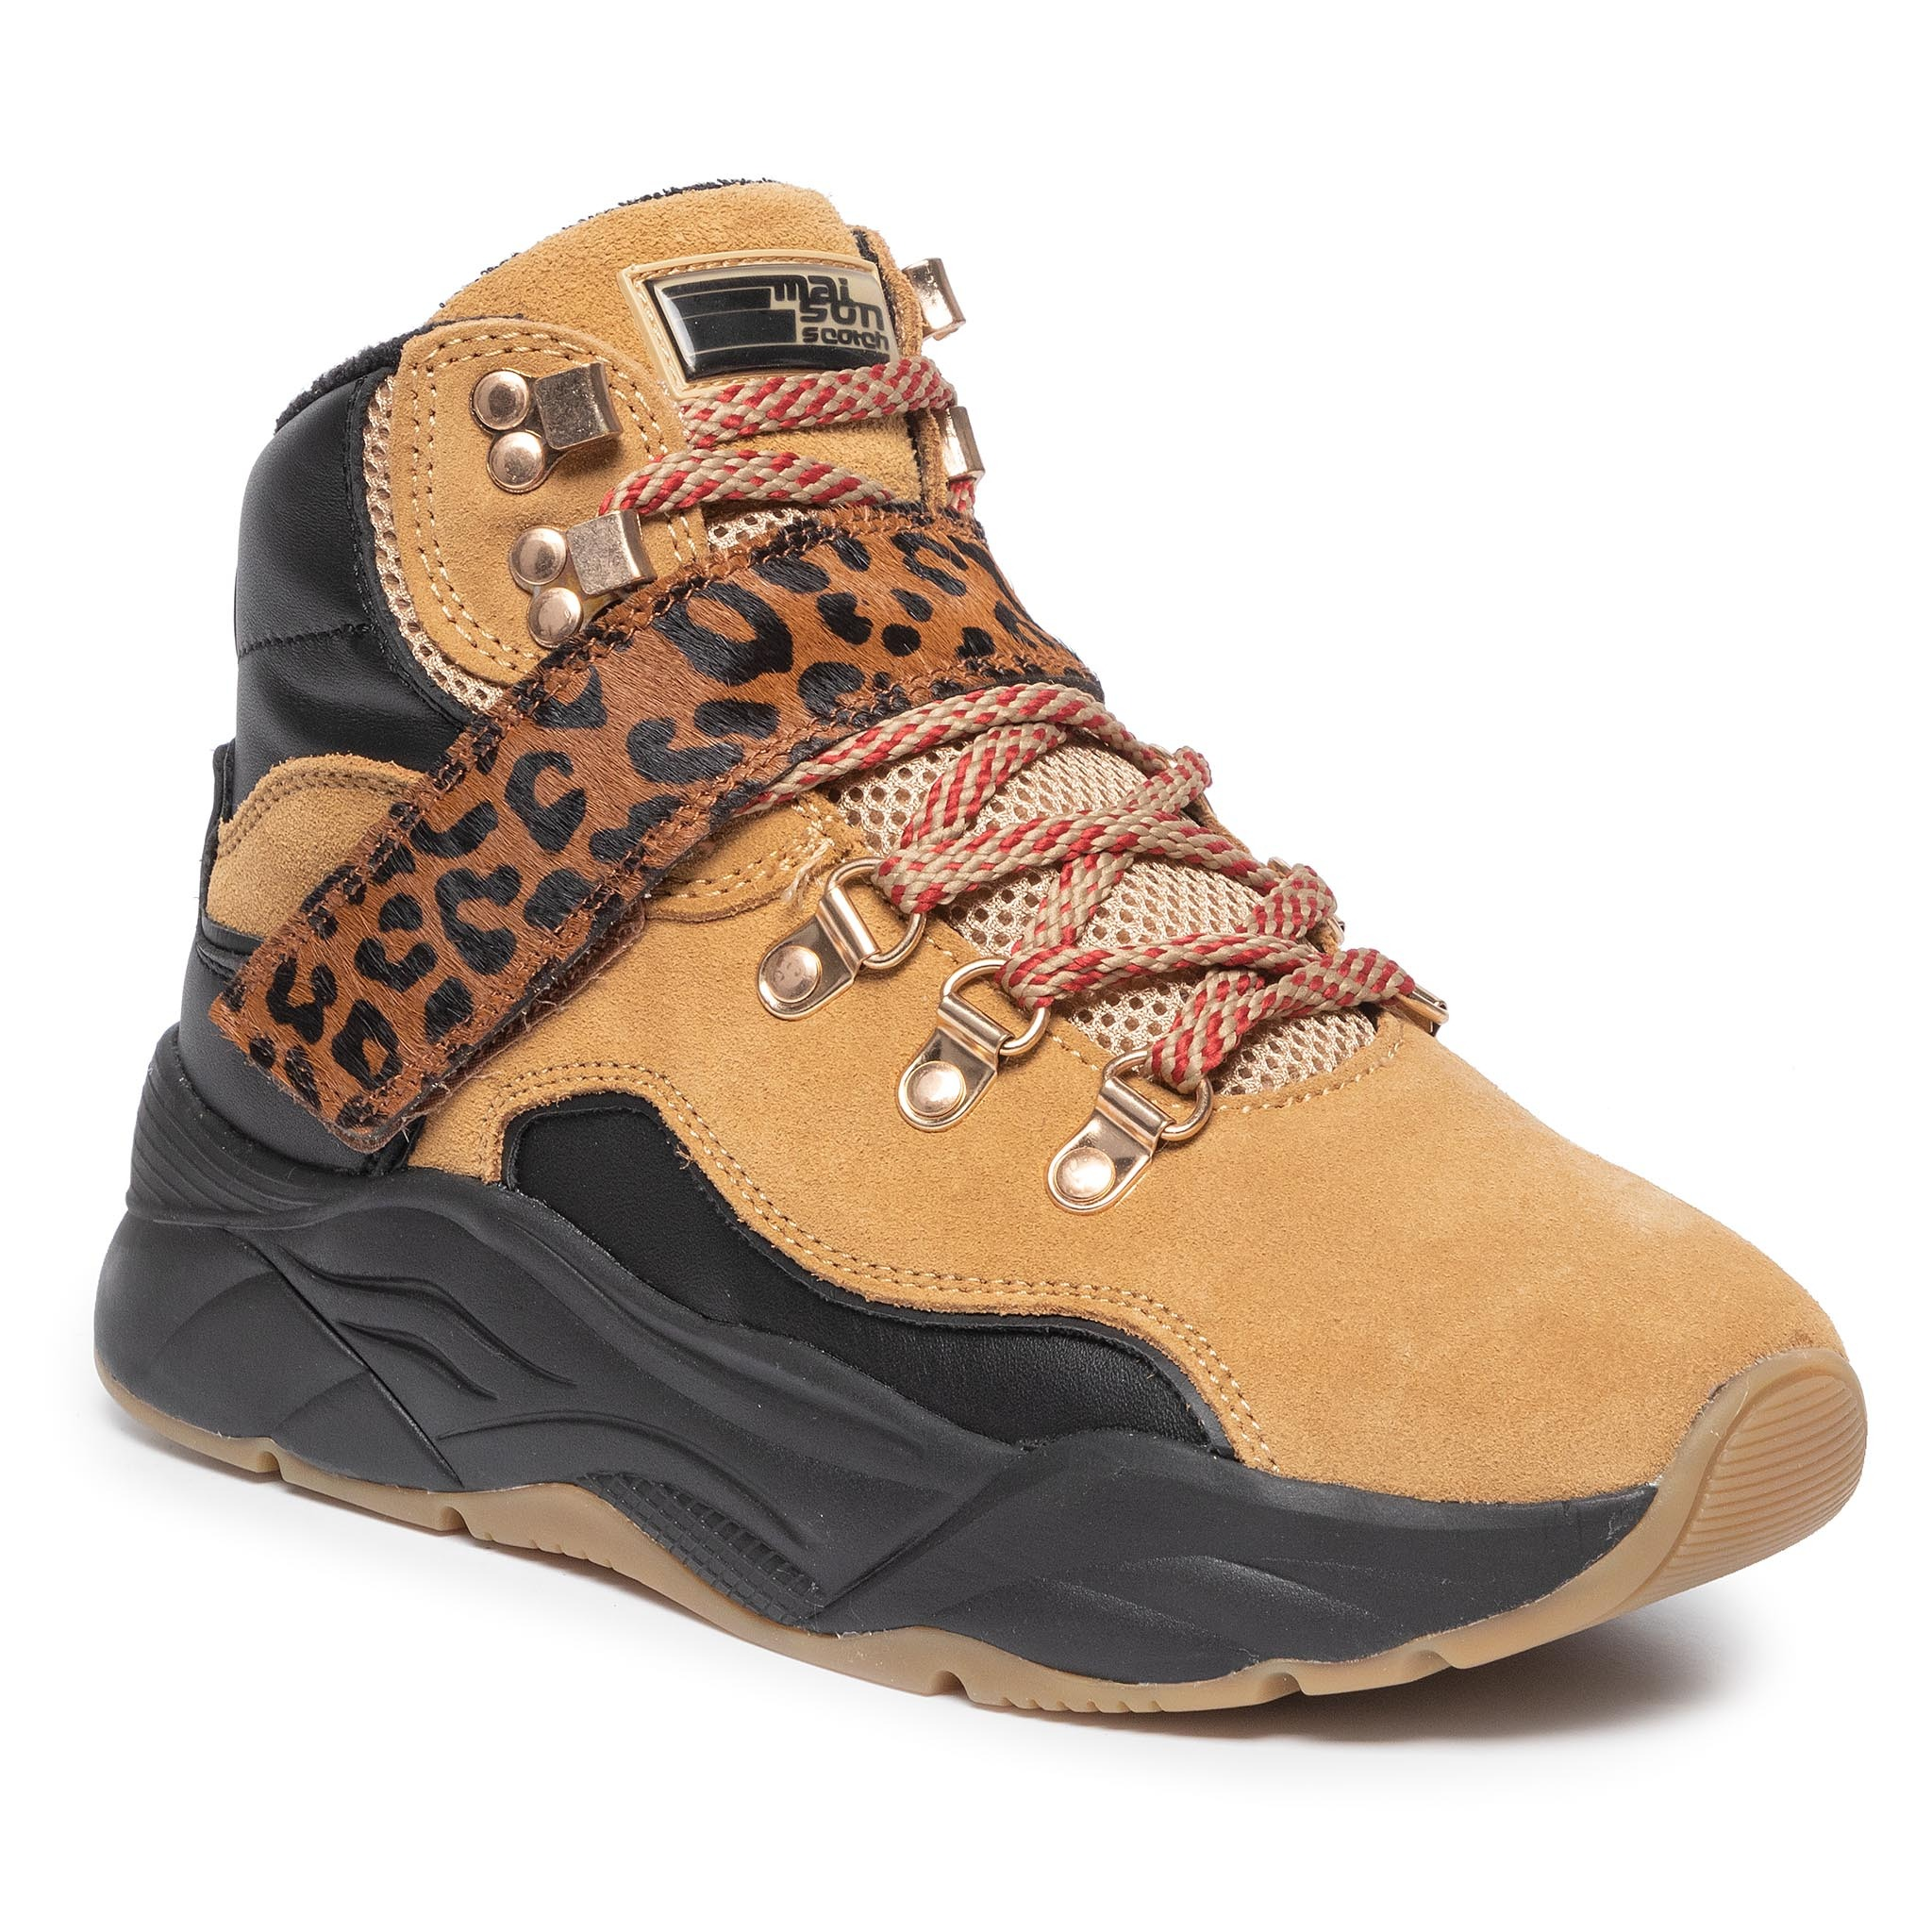 Sneakers SCOTCH & SODA - Celest 19733145 Camel/Black S144